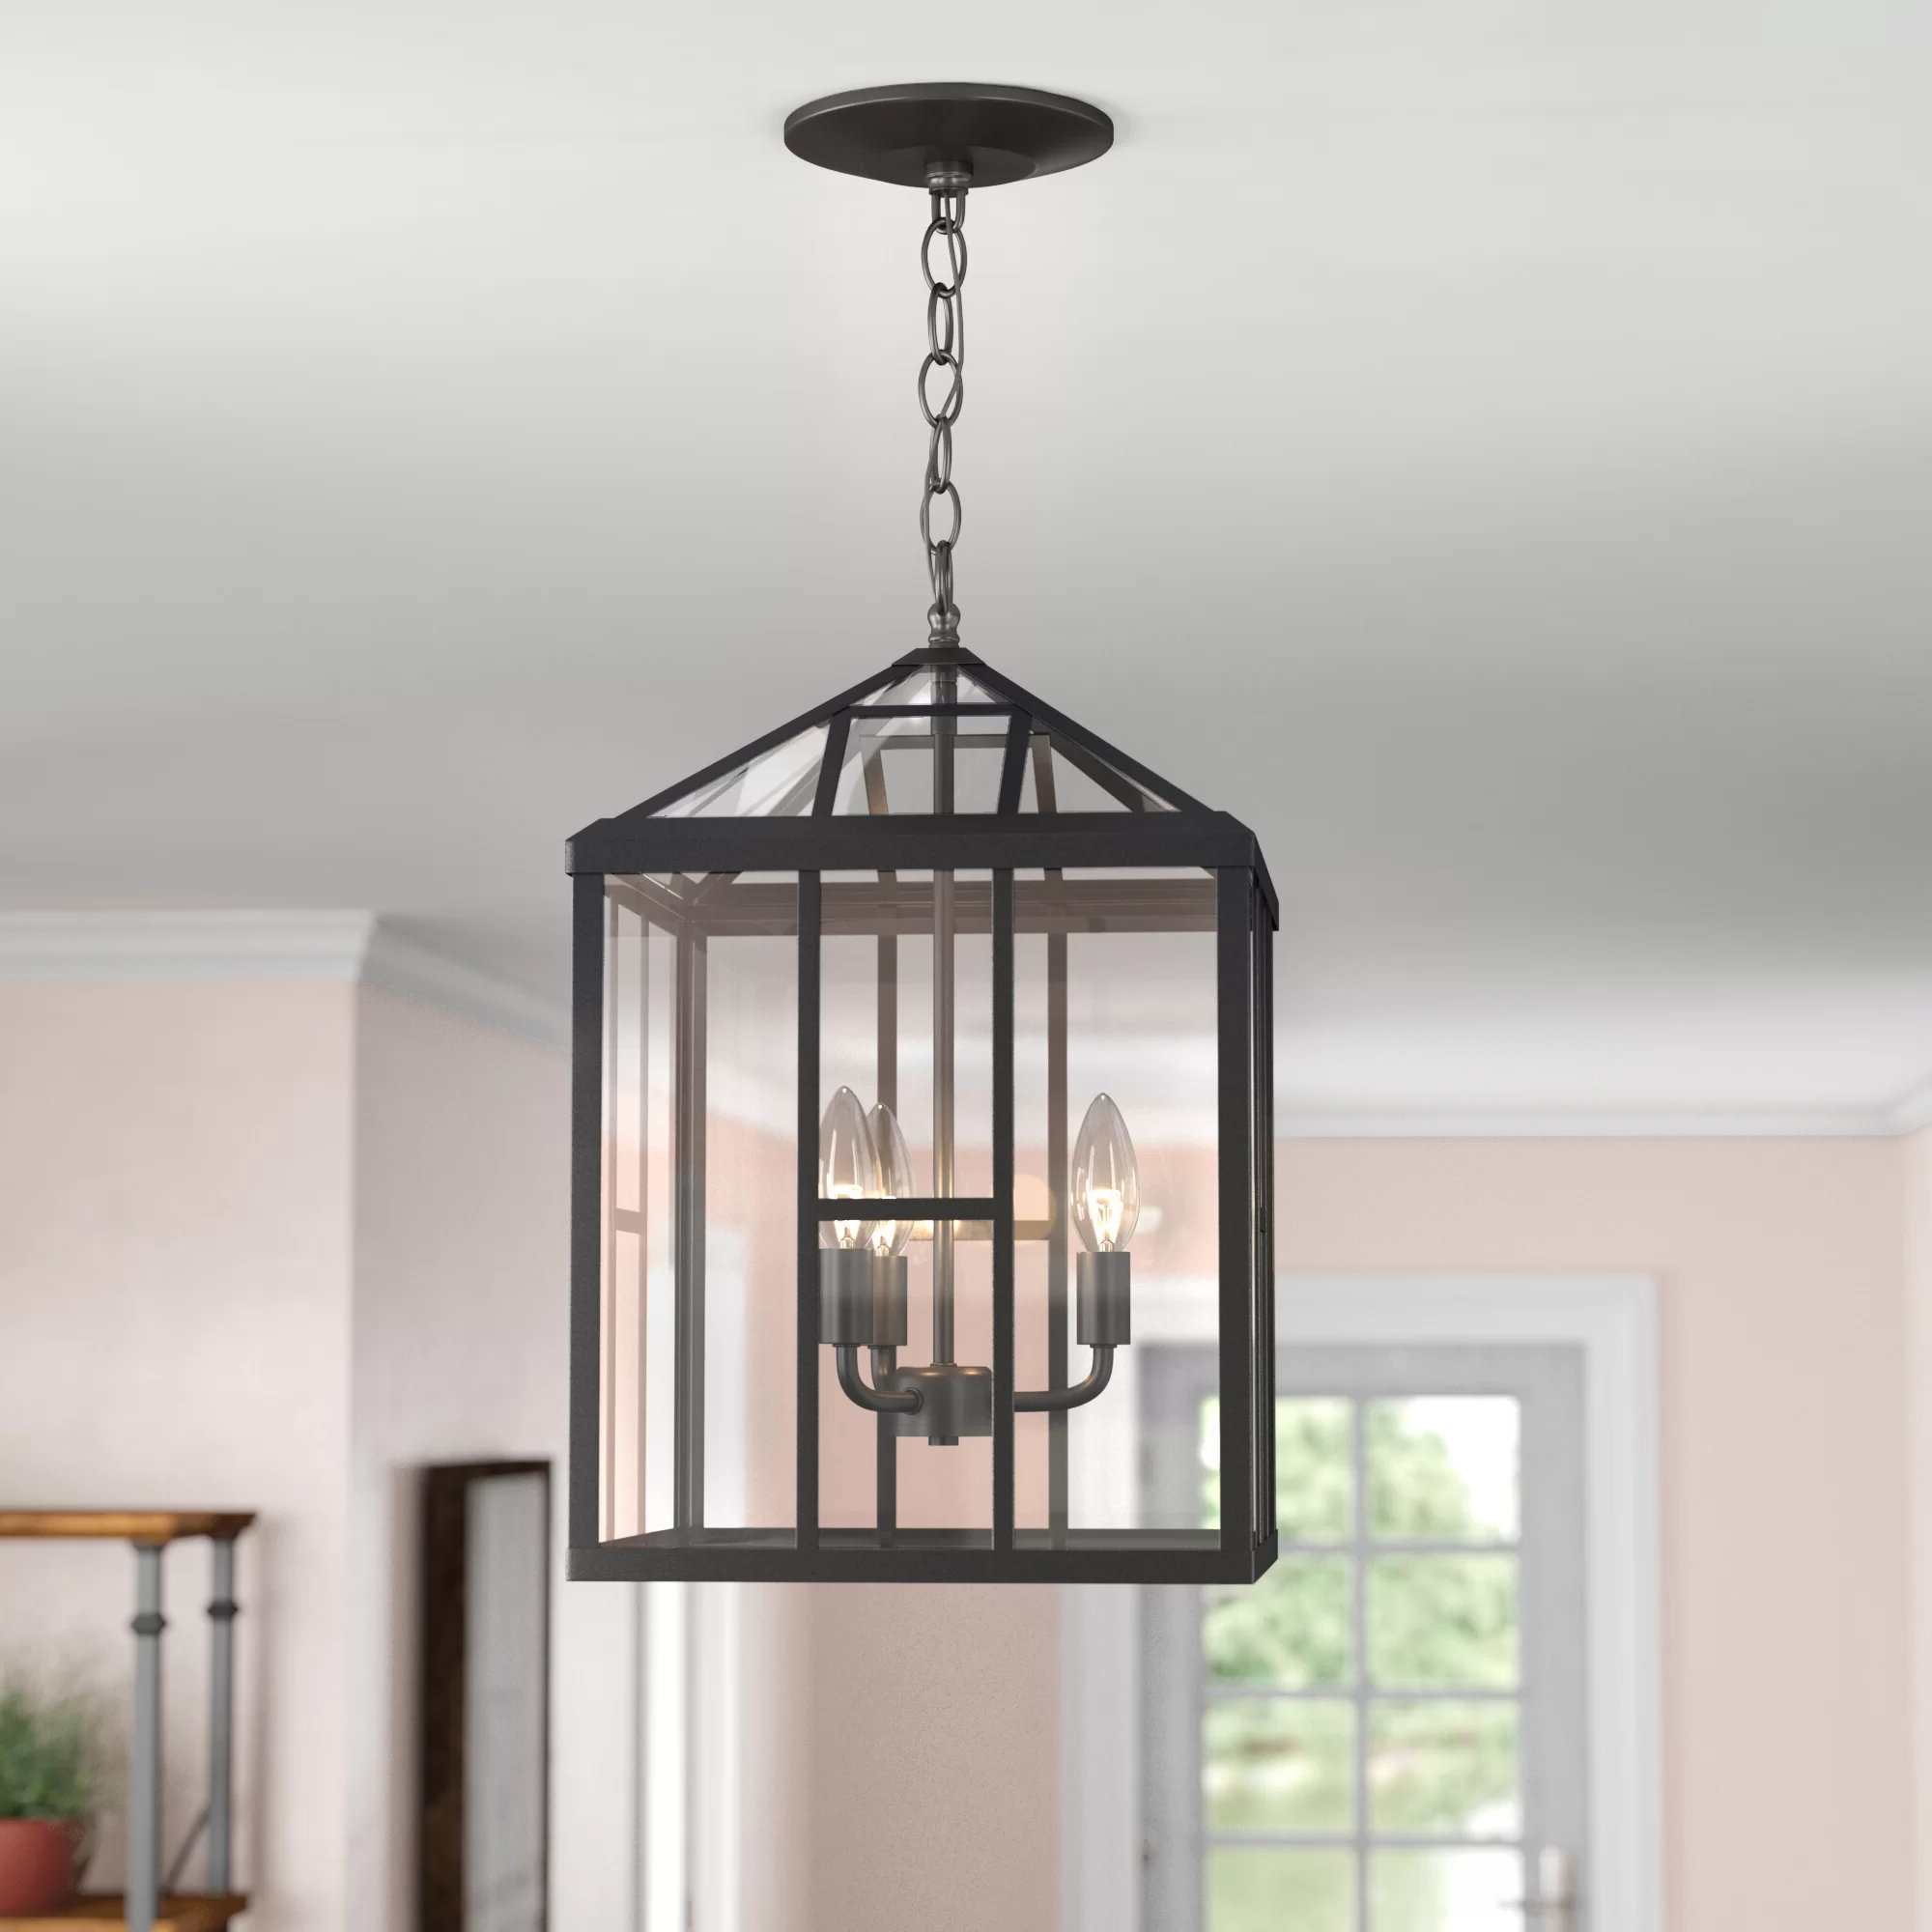 Lindsey 4 Light Drum Chandeliers Intended For Current Farmhouse & Rustic Gracie Oaks Chandeliers (Gallery 17 of 20)